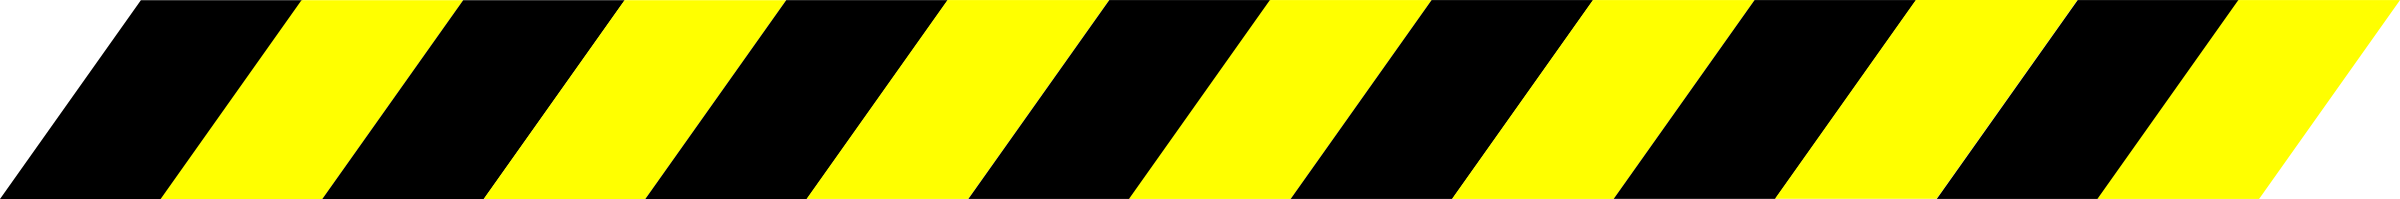 Warning Stripe Black/Yellow by Sabathius